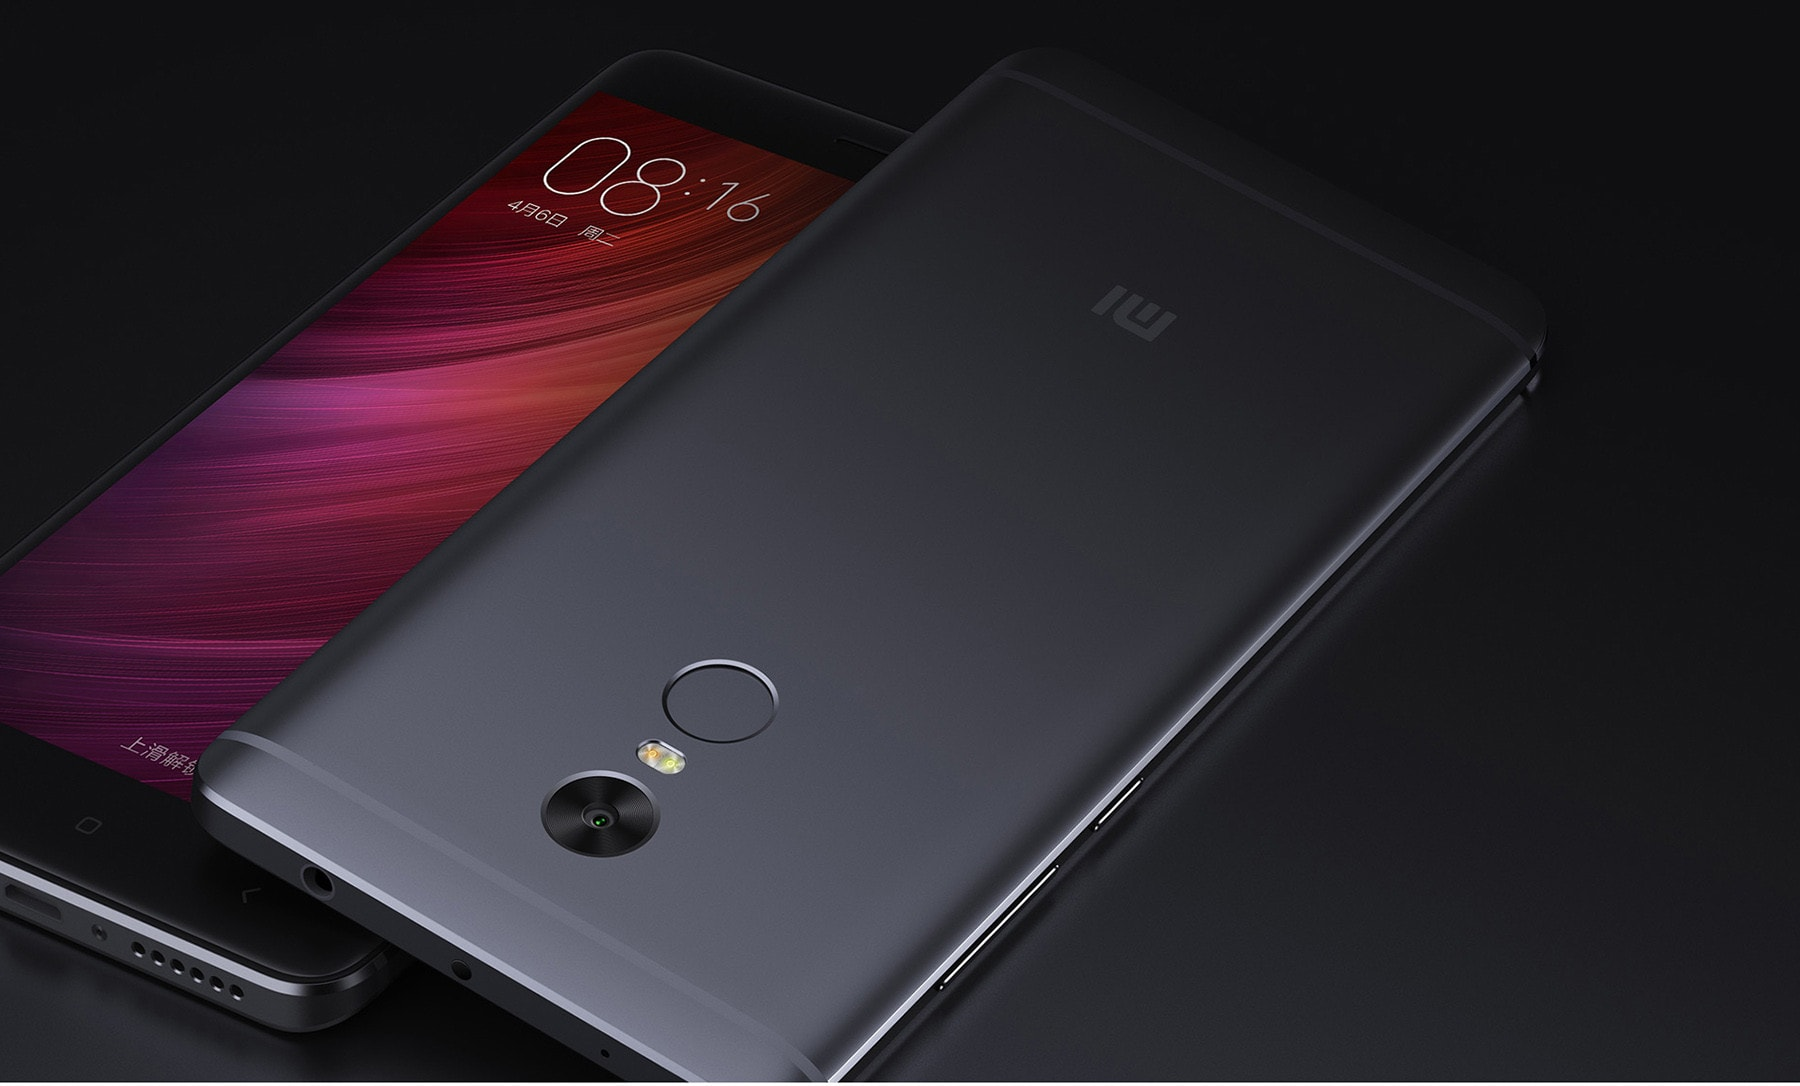 Redmi Note 5 To Launch On Feb. 14 Exclusively On Flipkart